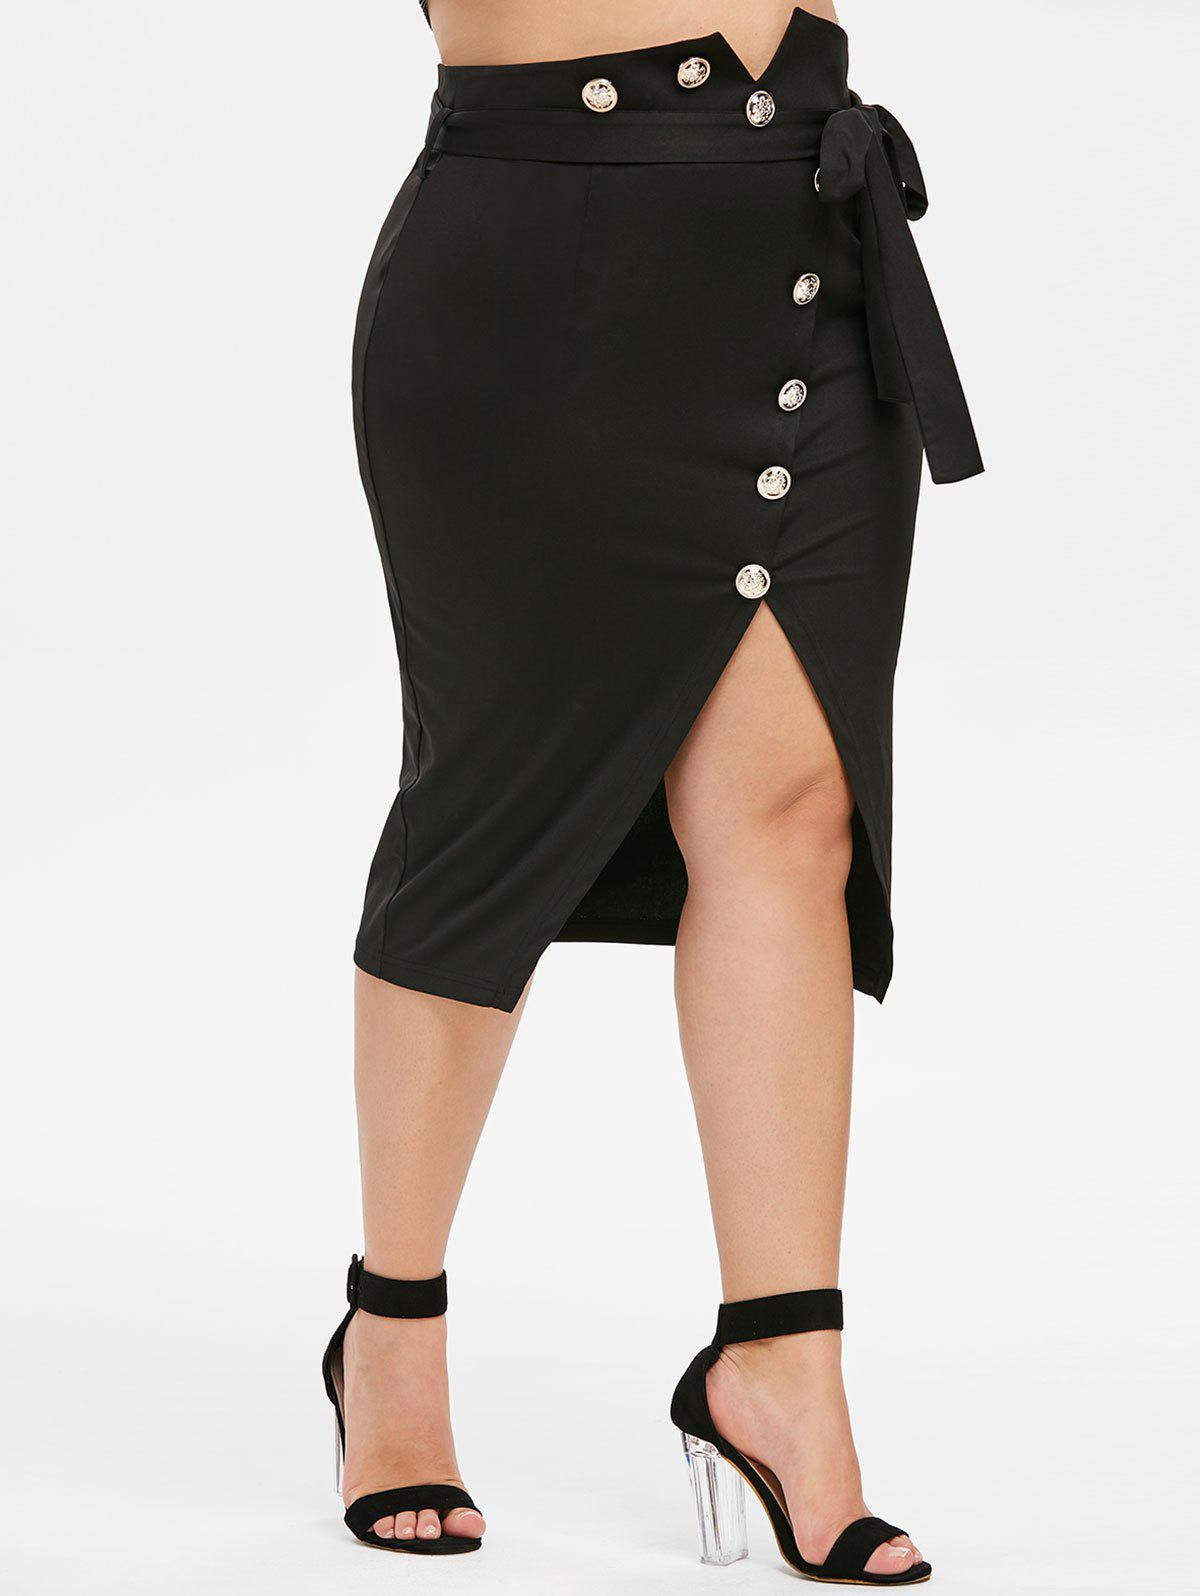 Plus Size High Waist Buttons Pencil Skirt - BLACK 3X